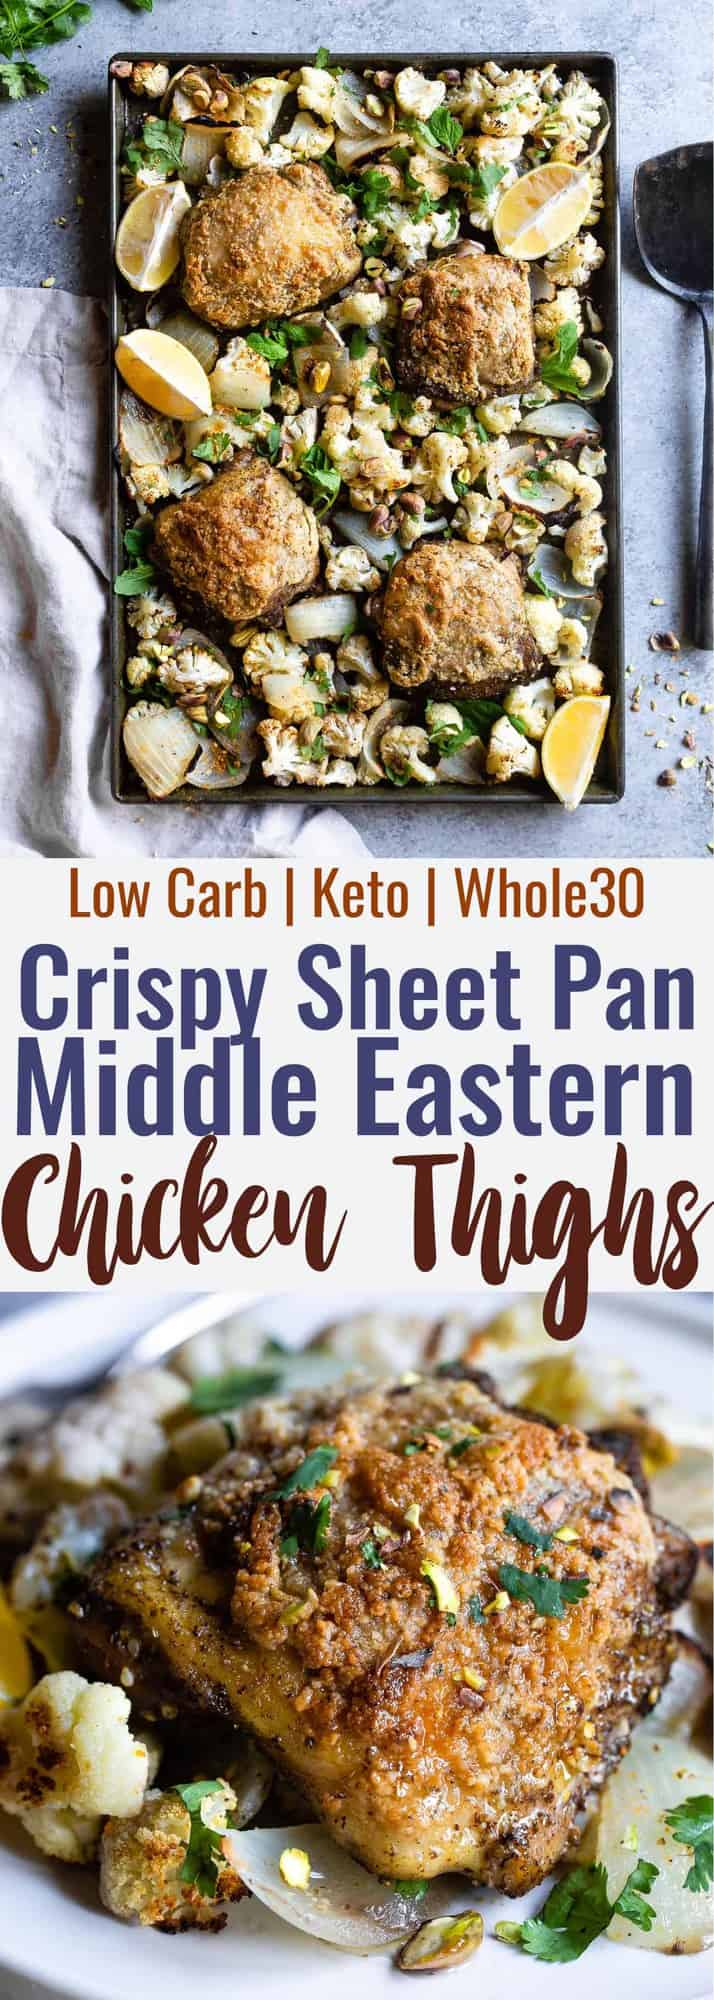 Sheet Pan Paleo Za'atar Chicken Thighs - an easy, one-pan, low carb healthy dinner with big, bold Middle Eastern flavors! The perfect keto friendly dish for meal prep or busy weeknights and you'll learn the secrets to crispy chicken thighs! | #Foodfaithfitness | #Glutenfree #Paleo #Whole30 #Lowcarb #Keto